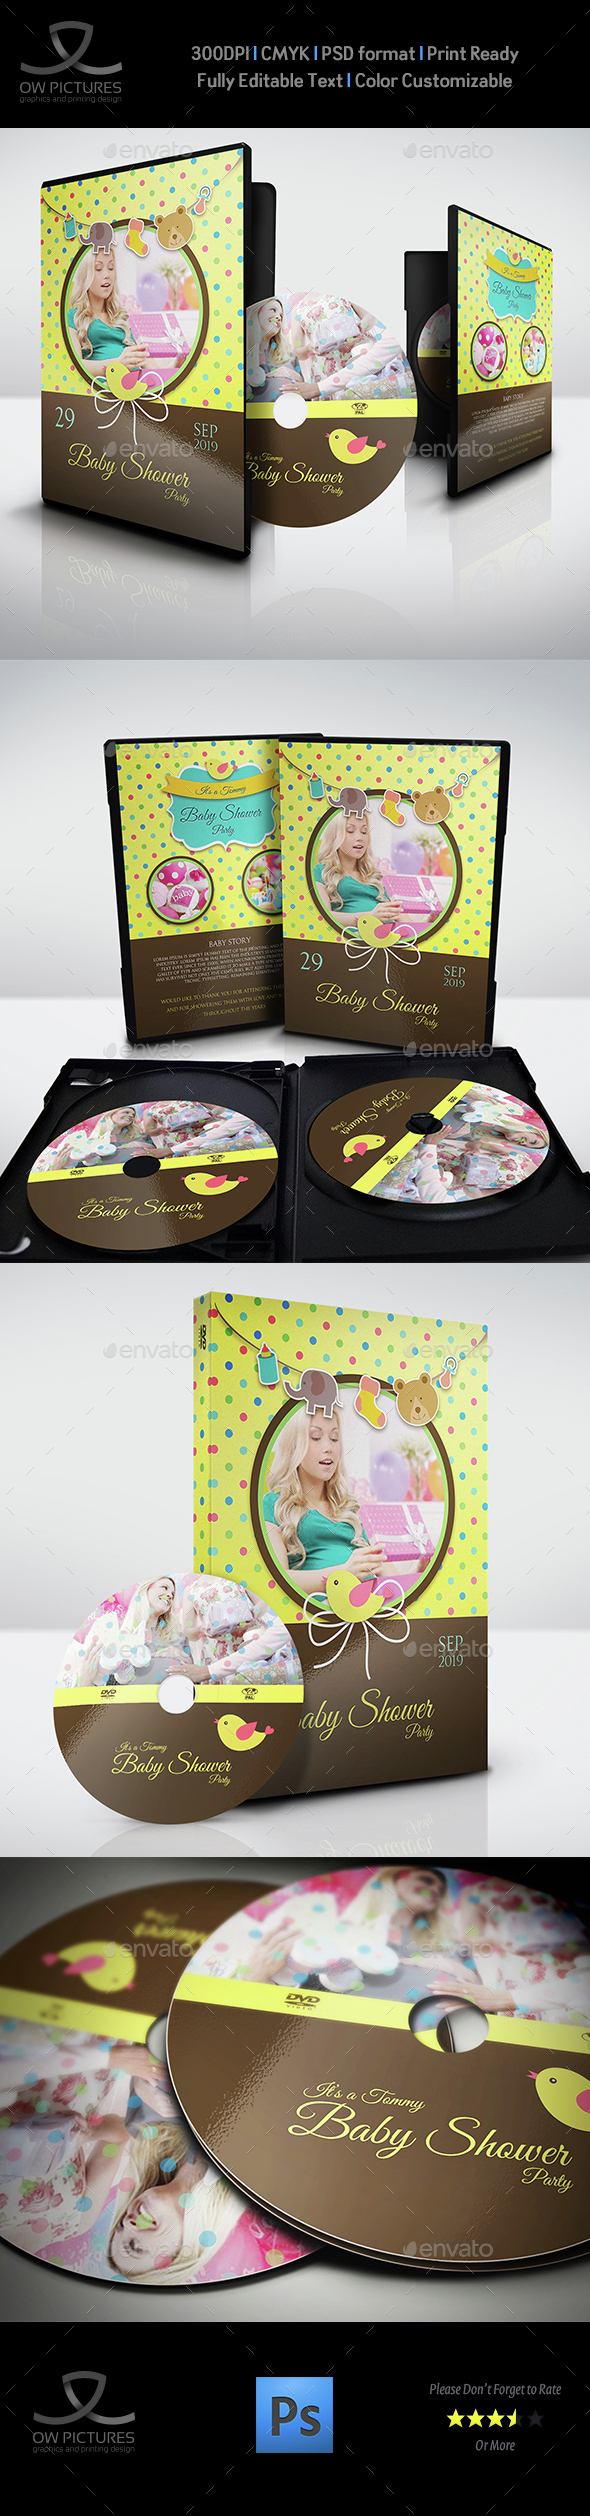 Baby Shower Party DVD Template Vol.6 - CD & DVD Artwork Print Templates